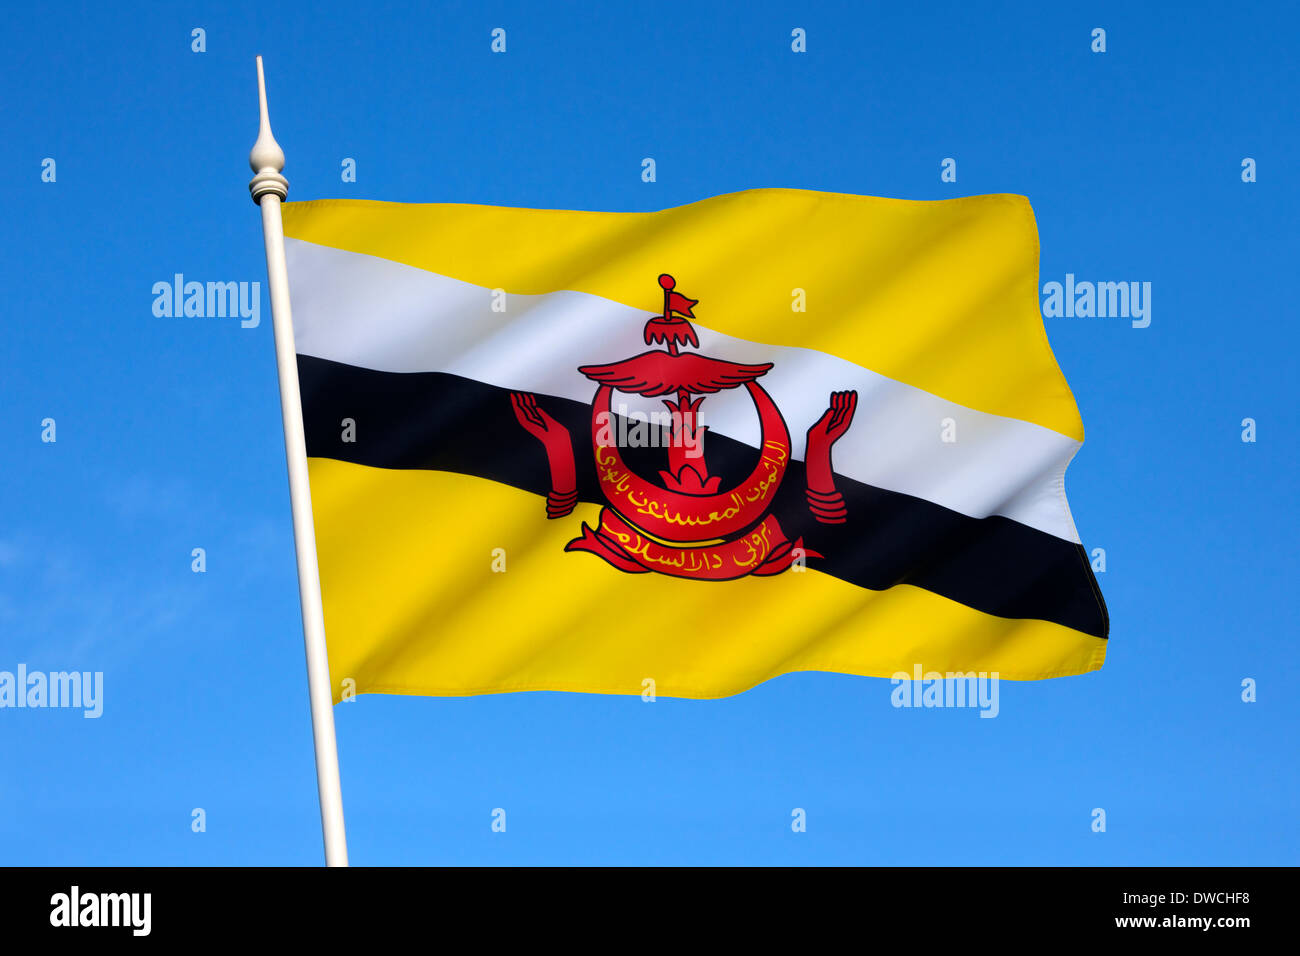 National flag of The Sultanate of Brunei, - Stock Image